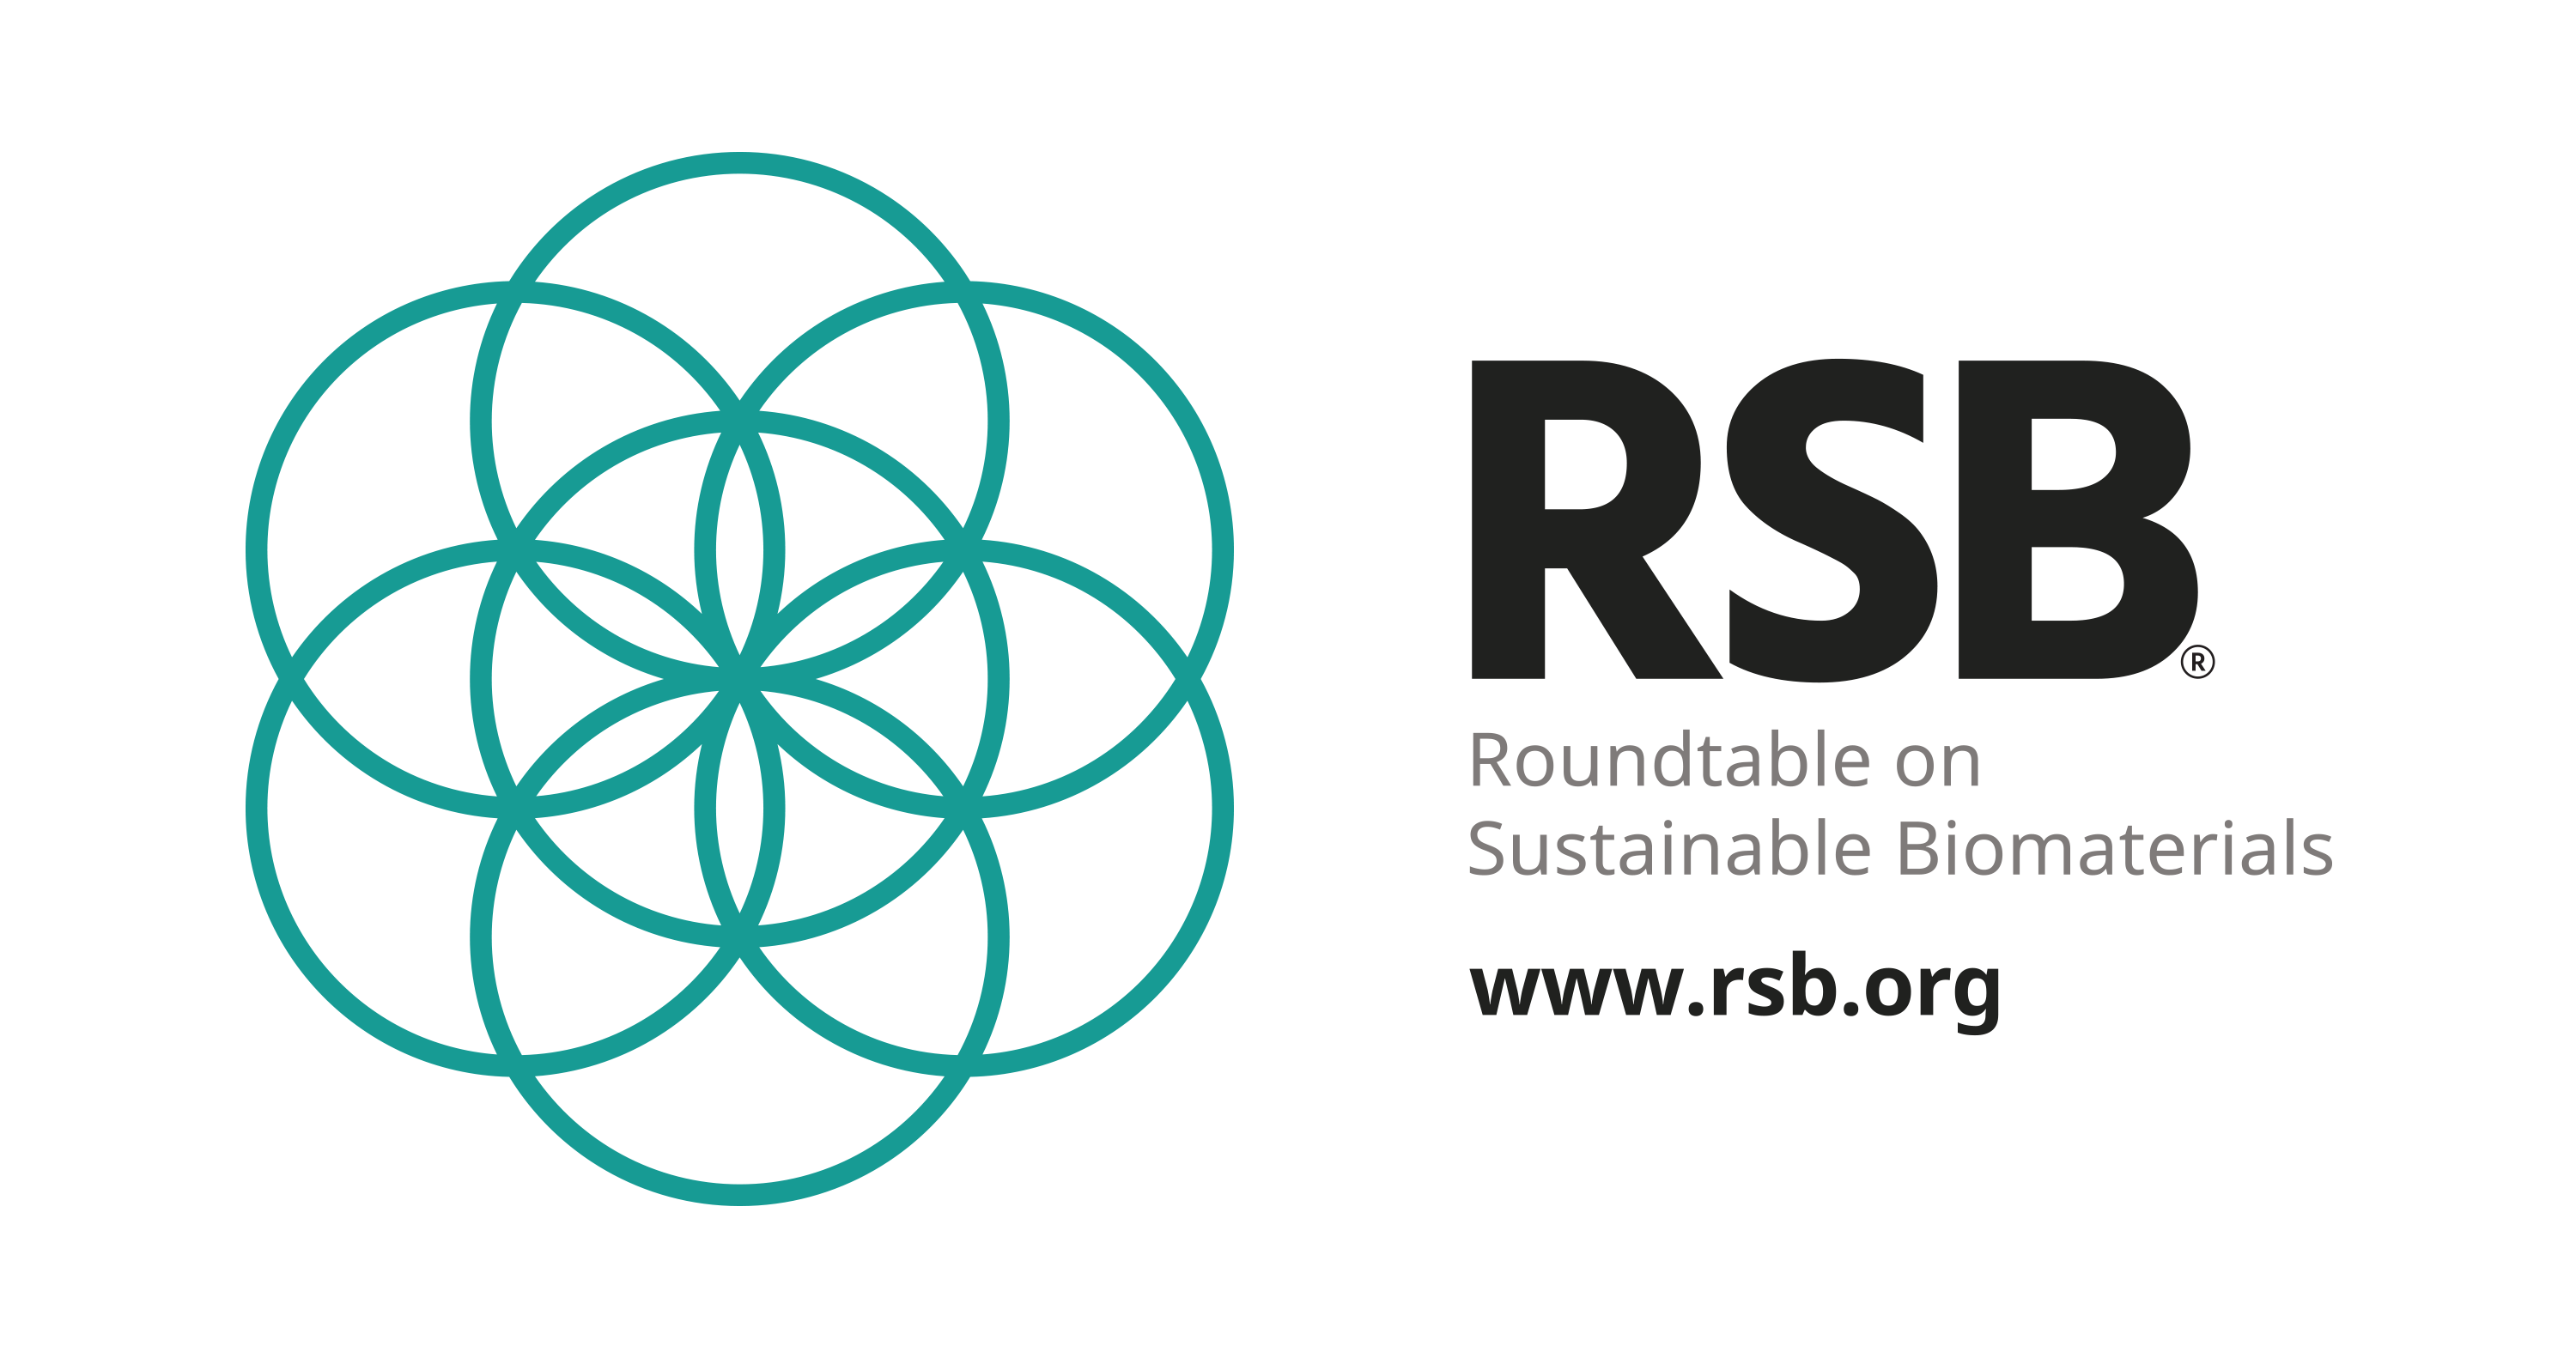 Roundtable on Sustainable Biomaterials (RSB)